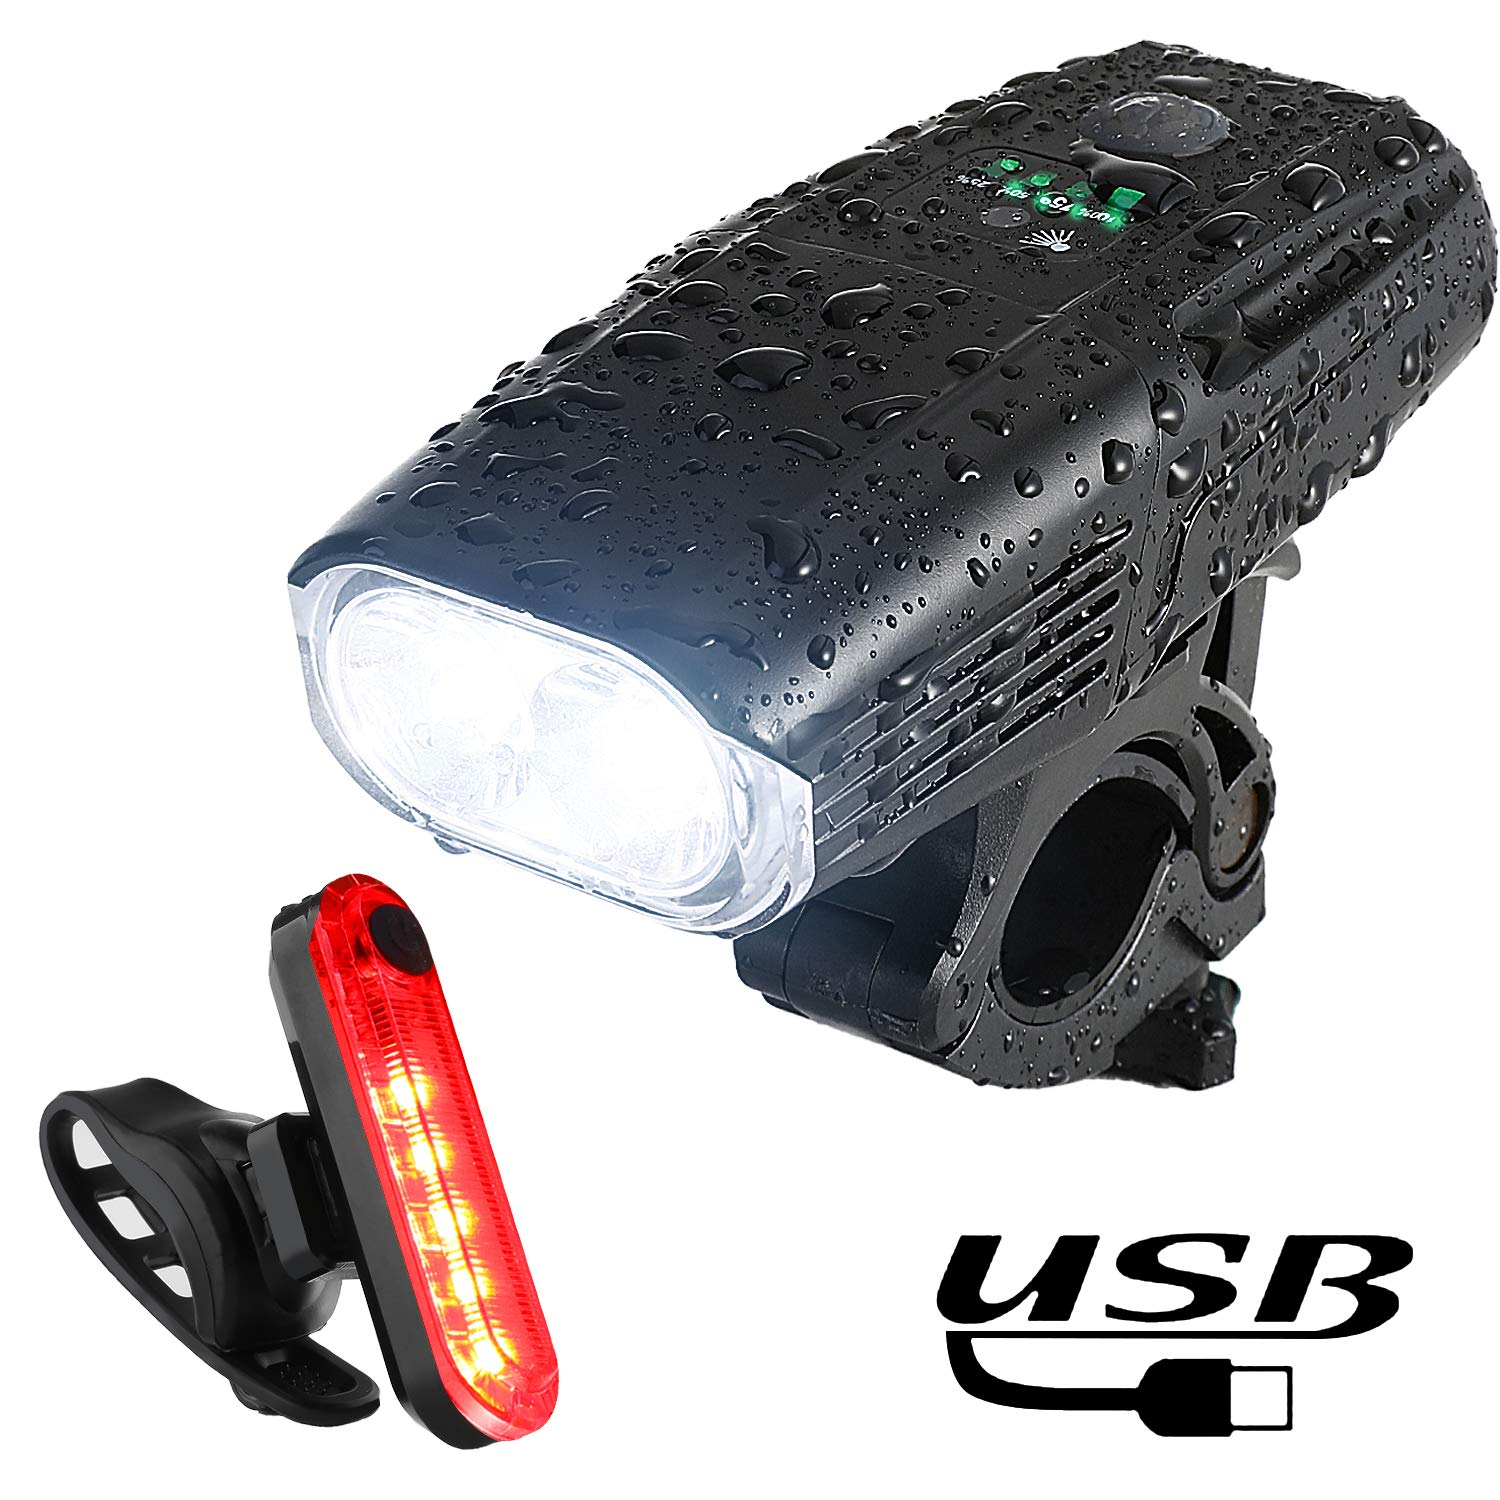 Super Bright Bike Light Front and Rear 1000LM Smart Led Bicycle Headlight Free Tail Light 4 Light Mode Safety Commuter Cycling Light for All Bikes Yosky USB Rechargeable Bike Light Set